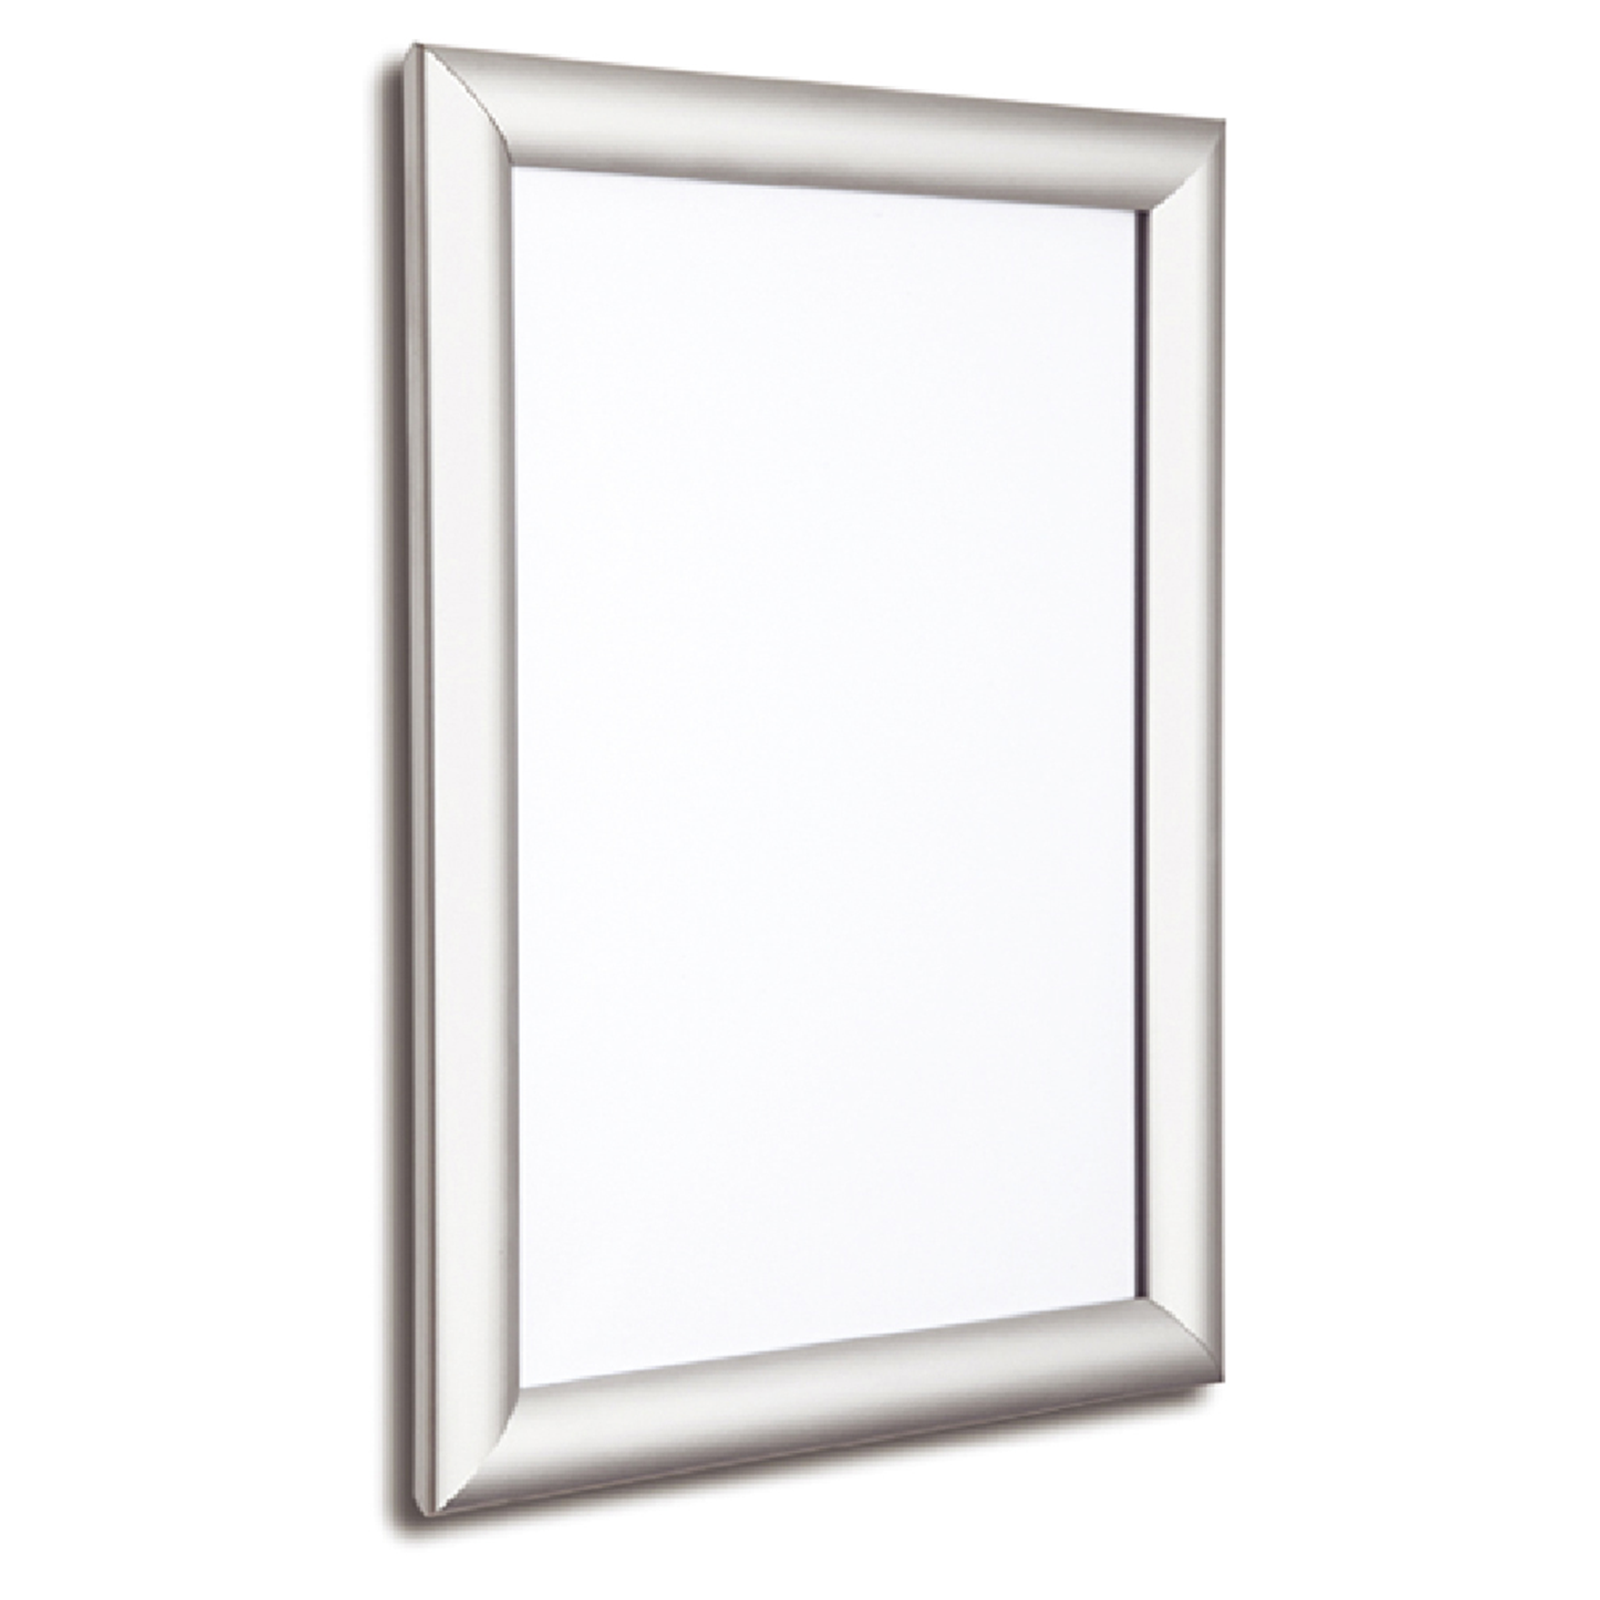 A2 Satin Silver - 25mm Poster Display Snap Frame